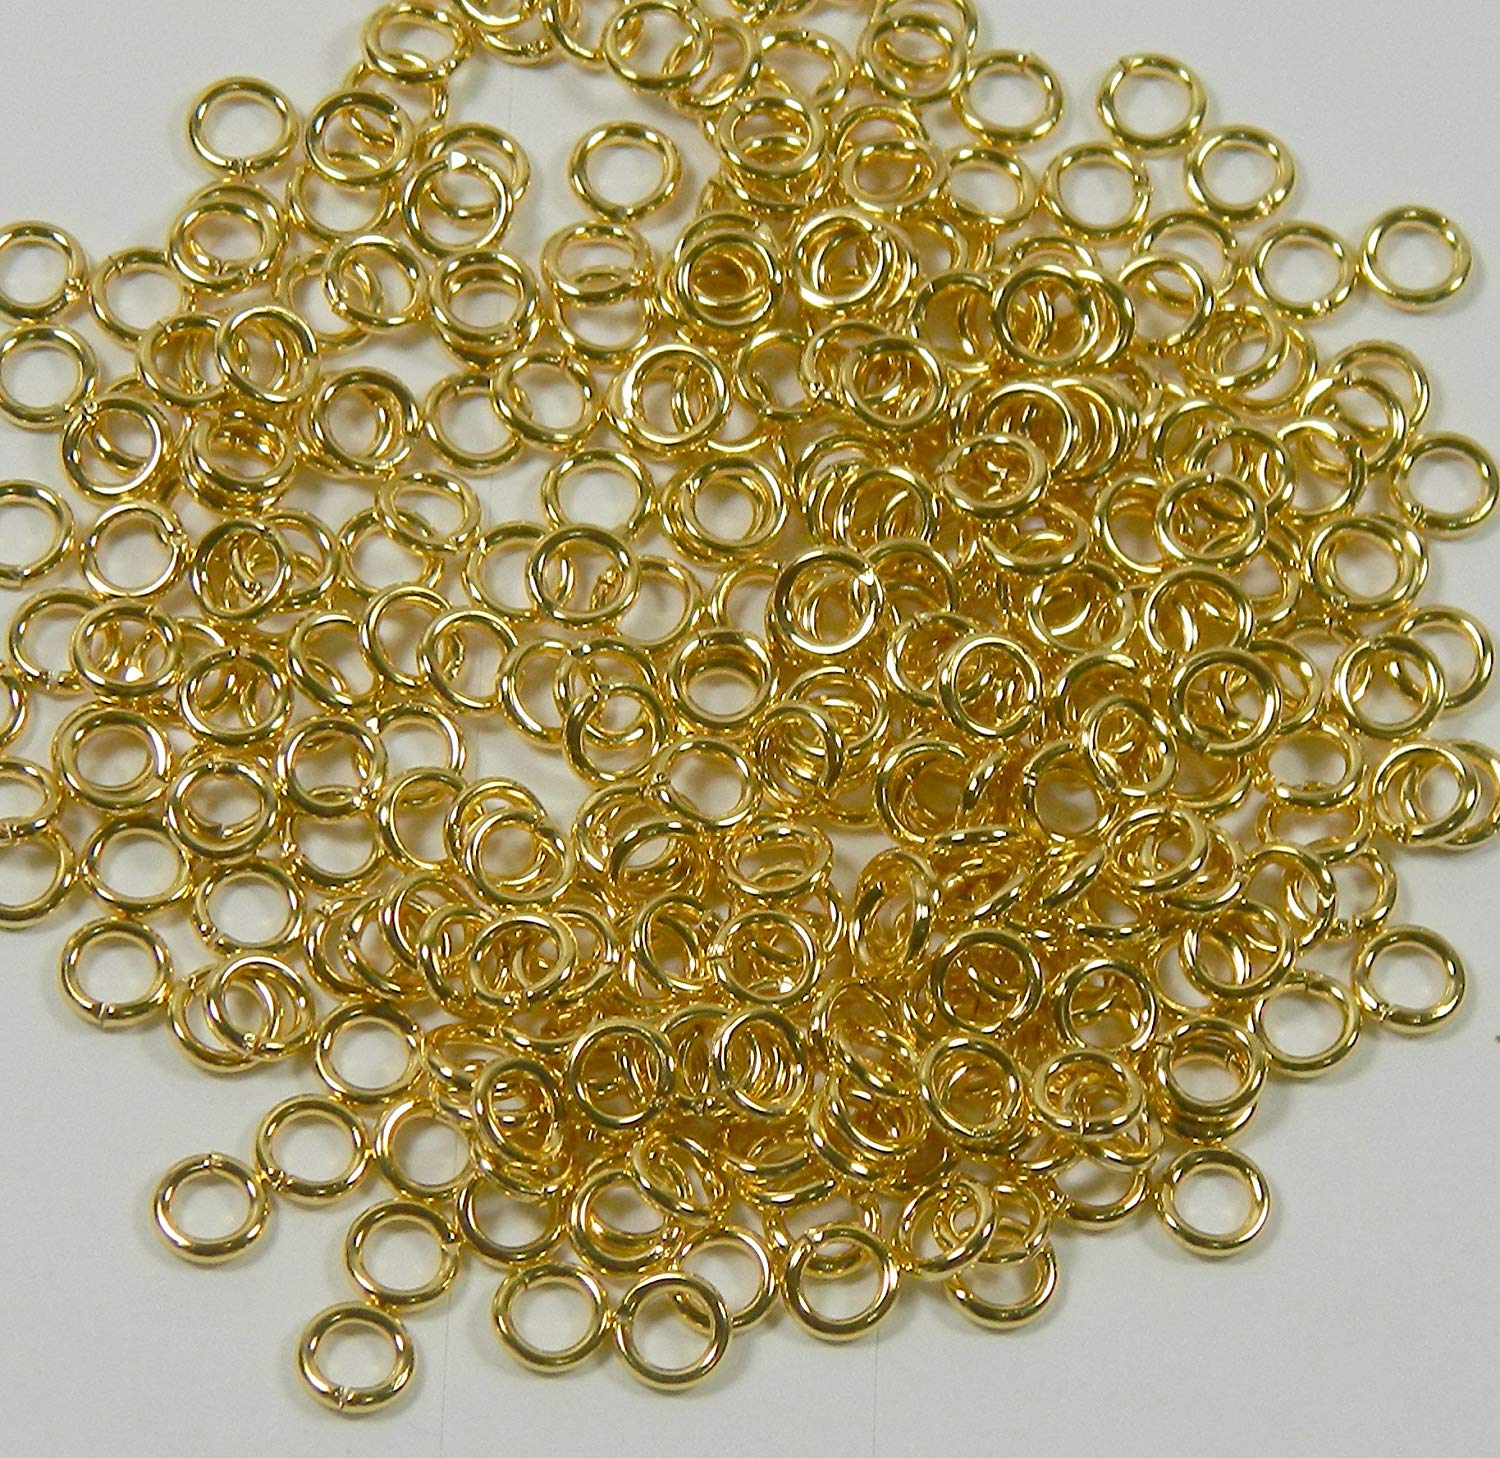 Rockin Beads 400 Jump Rings Gold Plated Brass 6mm Round 18 Gauge Jewelry Connectors Chain Links